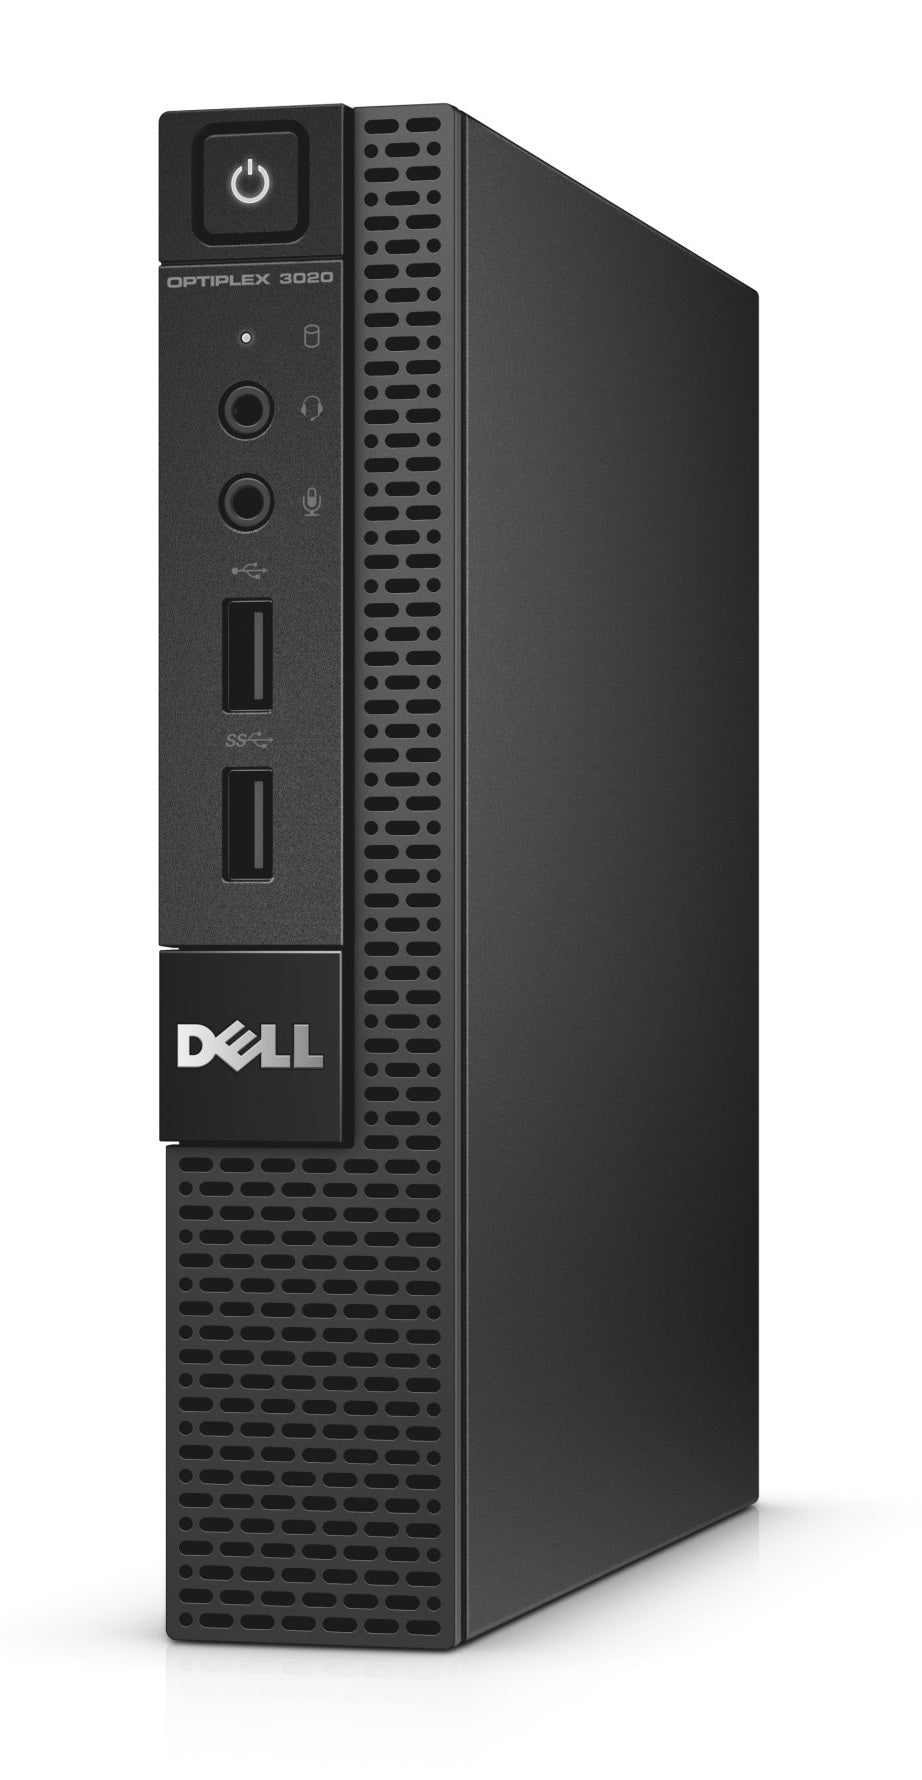 Dell Optiplex MY6TM Desktop(Black)